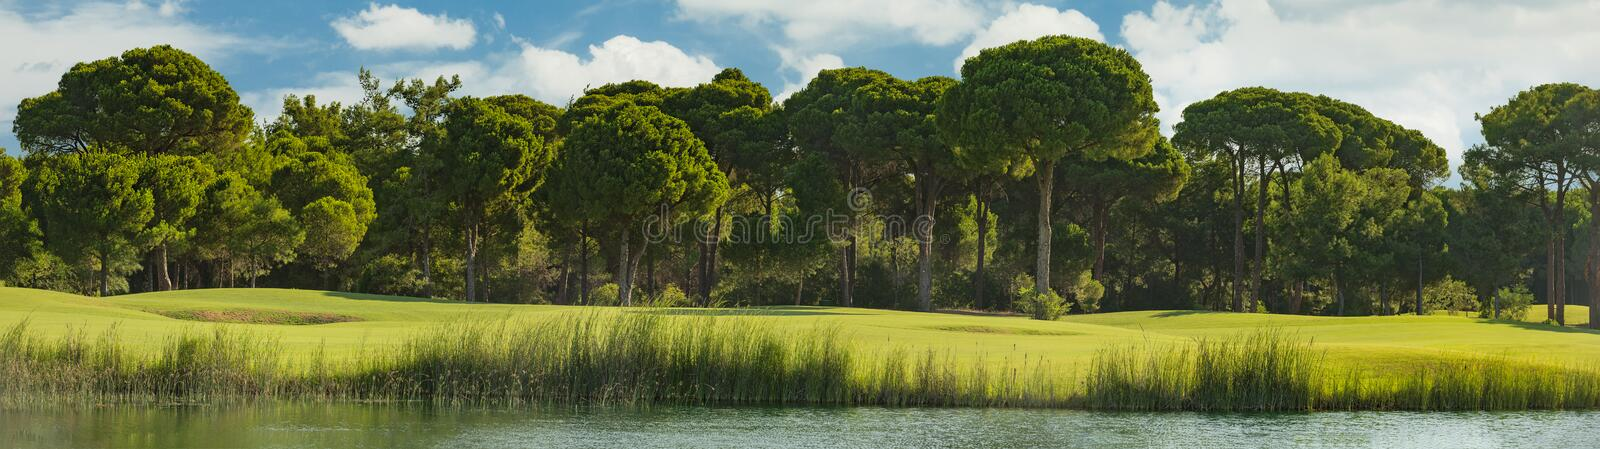 Golf course with lake royalty free stock image